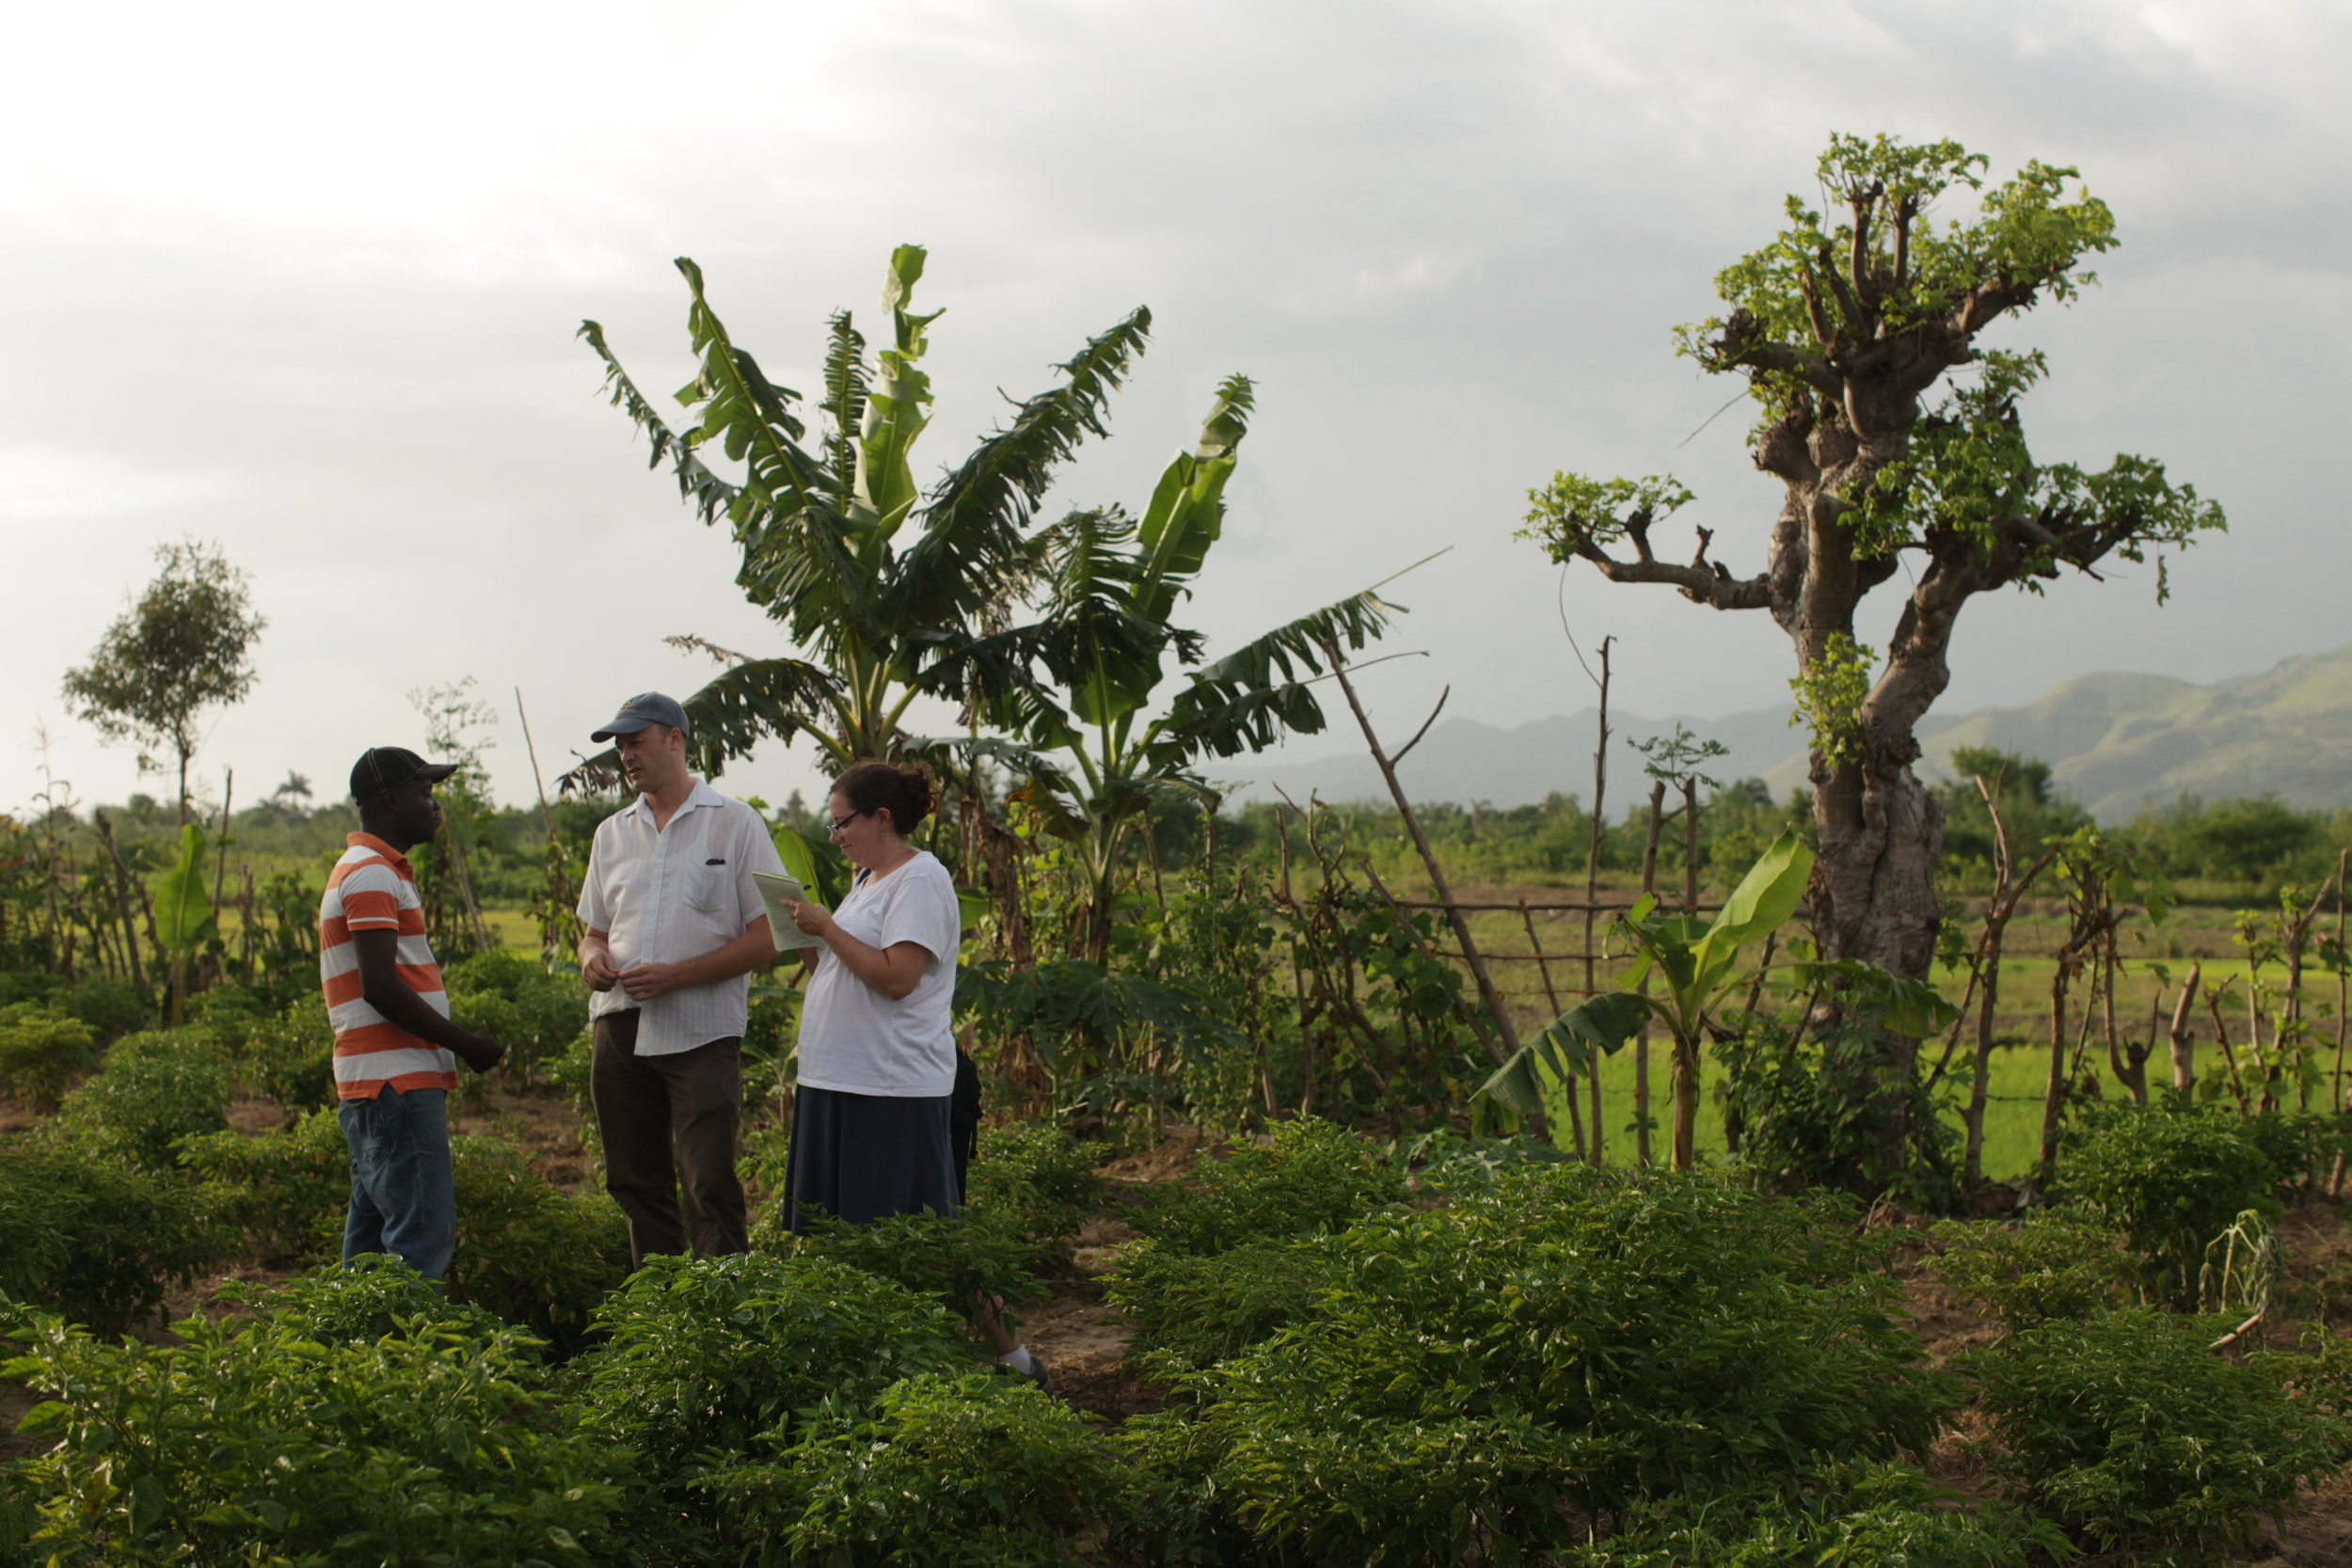 MCC U.S. Publications Coordinator Marla Pierson Lester and MCC Haiti Representative Kurt Hildebrant interview Duckson Dosthenes who studied agriculture at Desarmes professional trade school. After graduating,he started his own business growing and selling vegetables to market vendors.